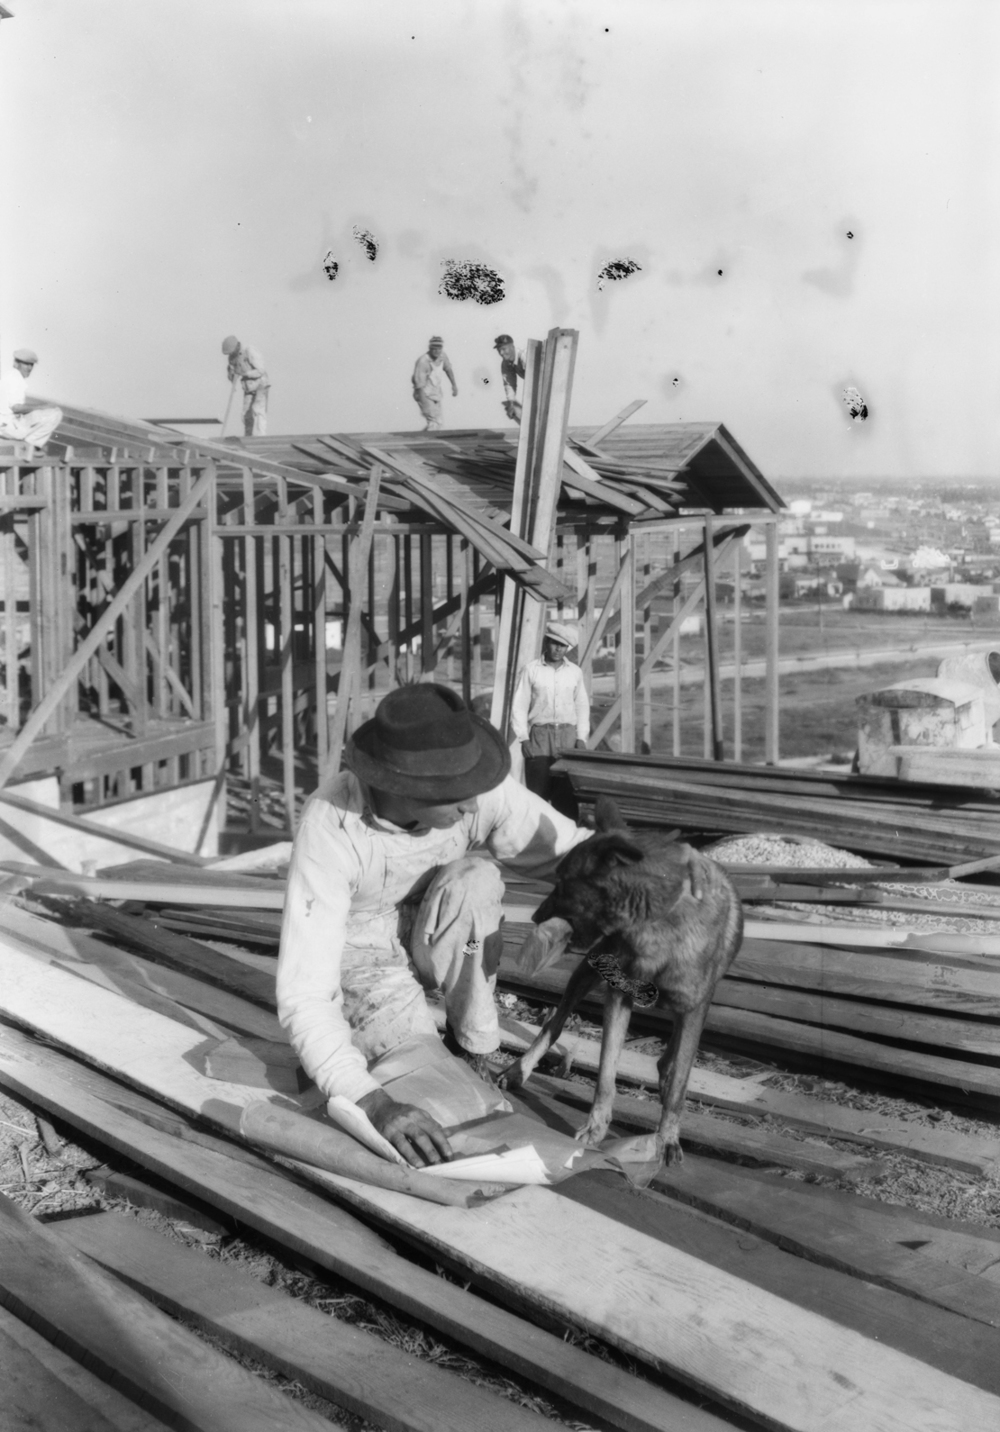 Construction_shots_in_View_Park_Los_Angeles_CA_1928_image_4.jpg